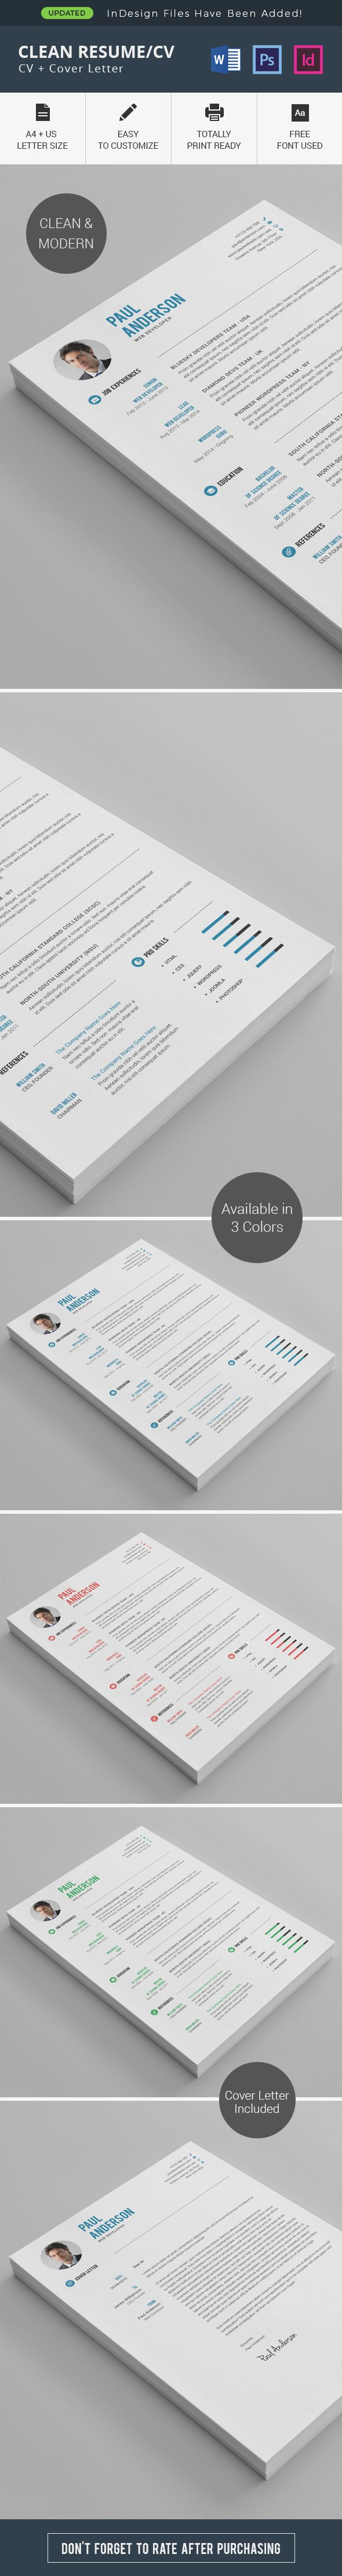 Clean Resume/CV on Behance